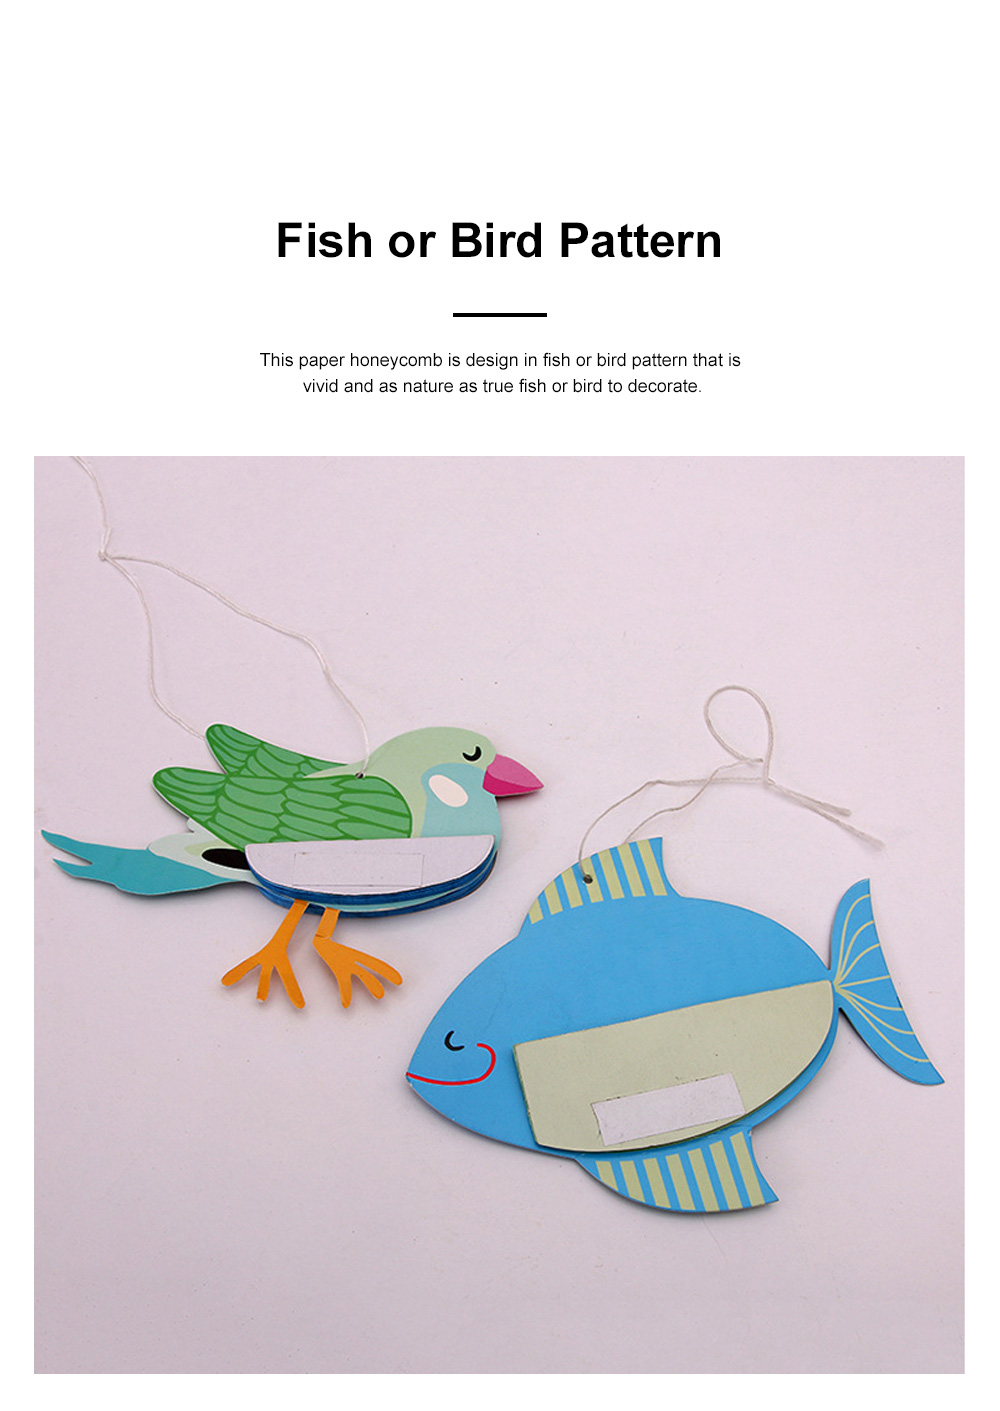 6pcs Festive Decoration Bird Fish Paper Honeycomb Party Use Three-dimensional Card Fish Paper Honeycomb Paper Flowers Ball 3